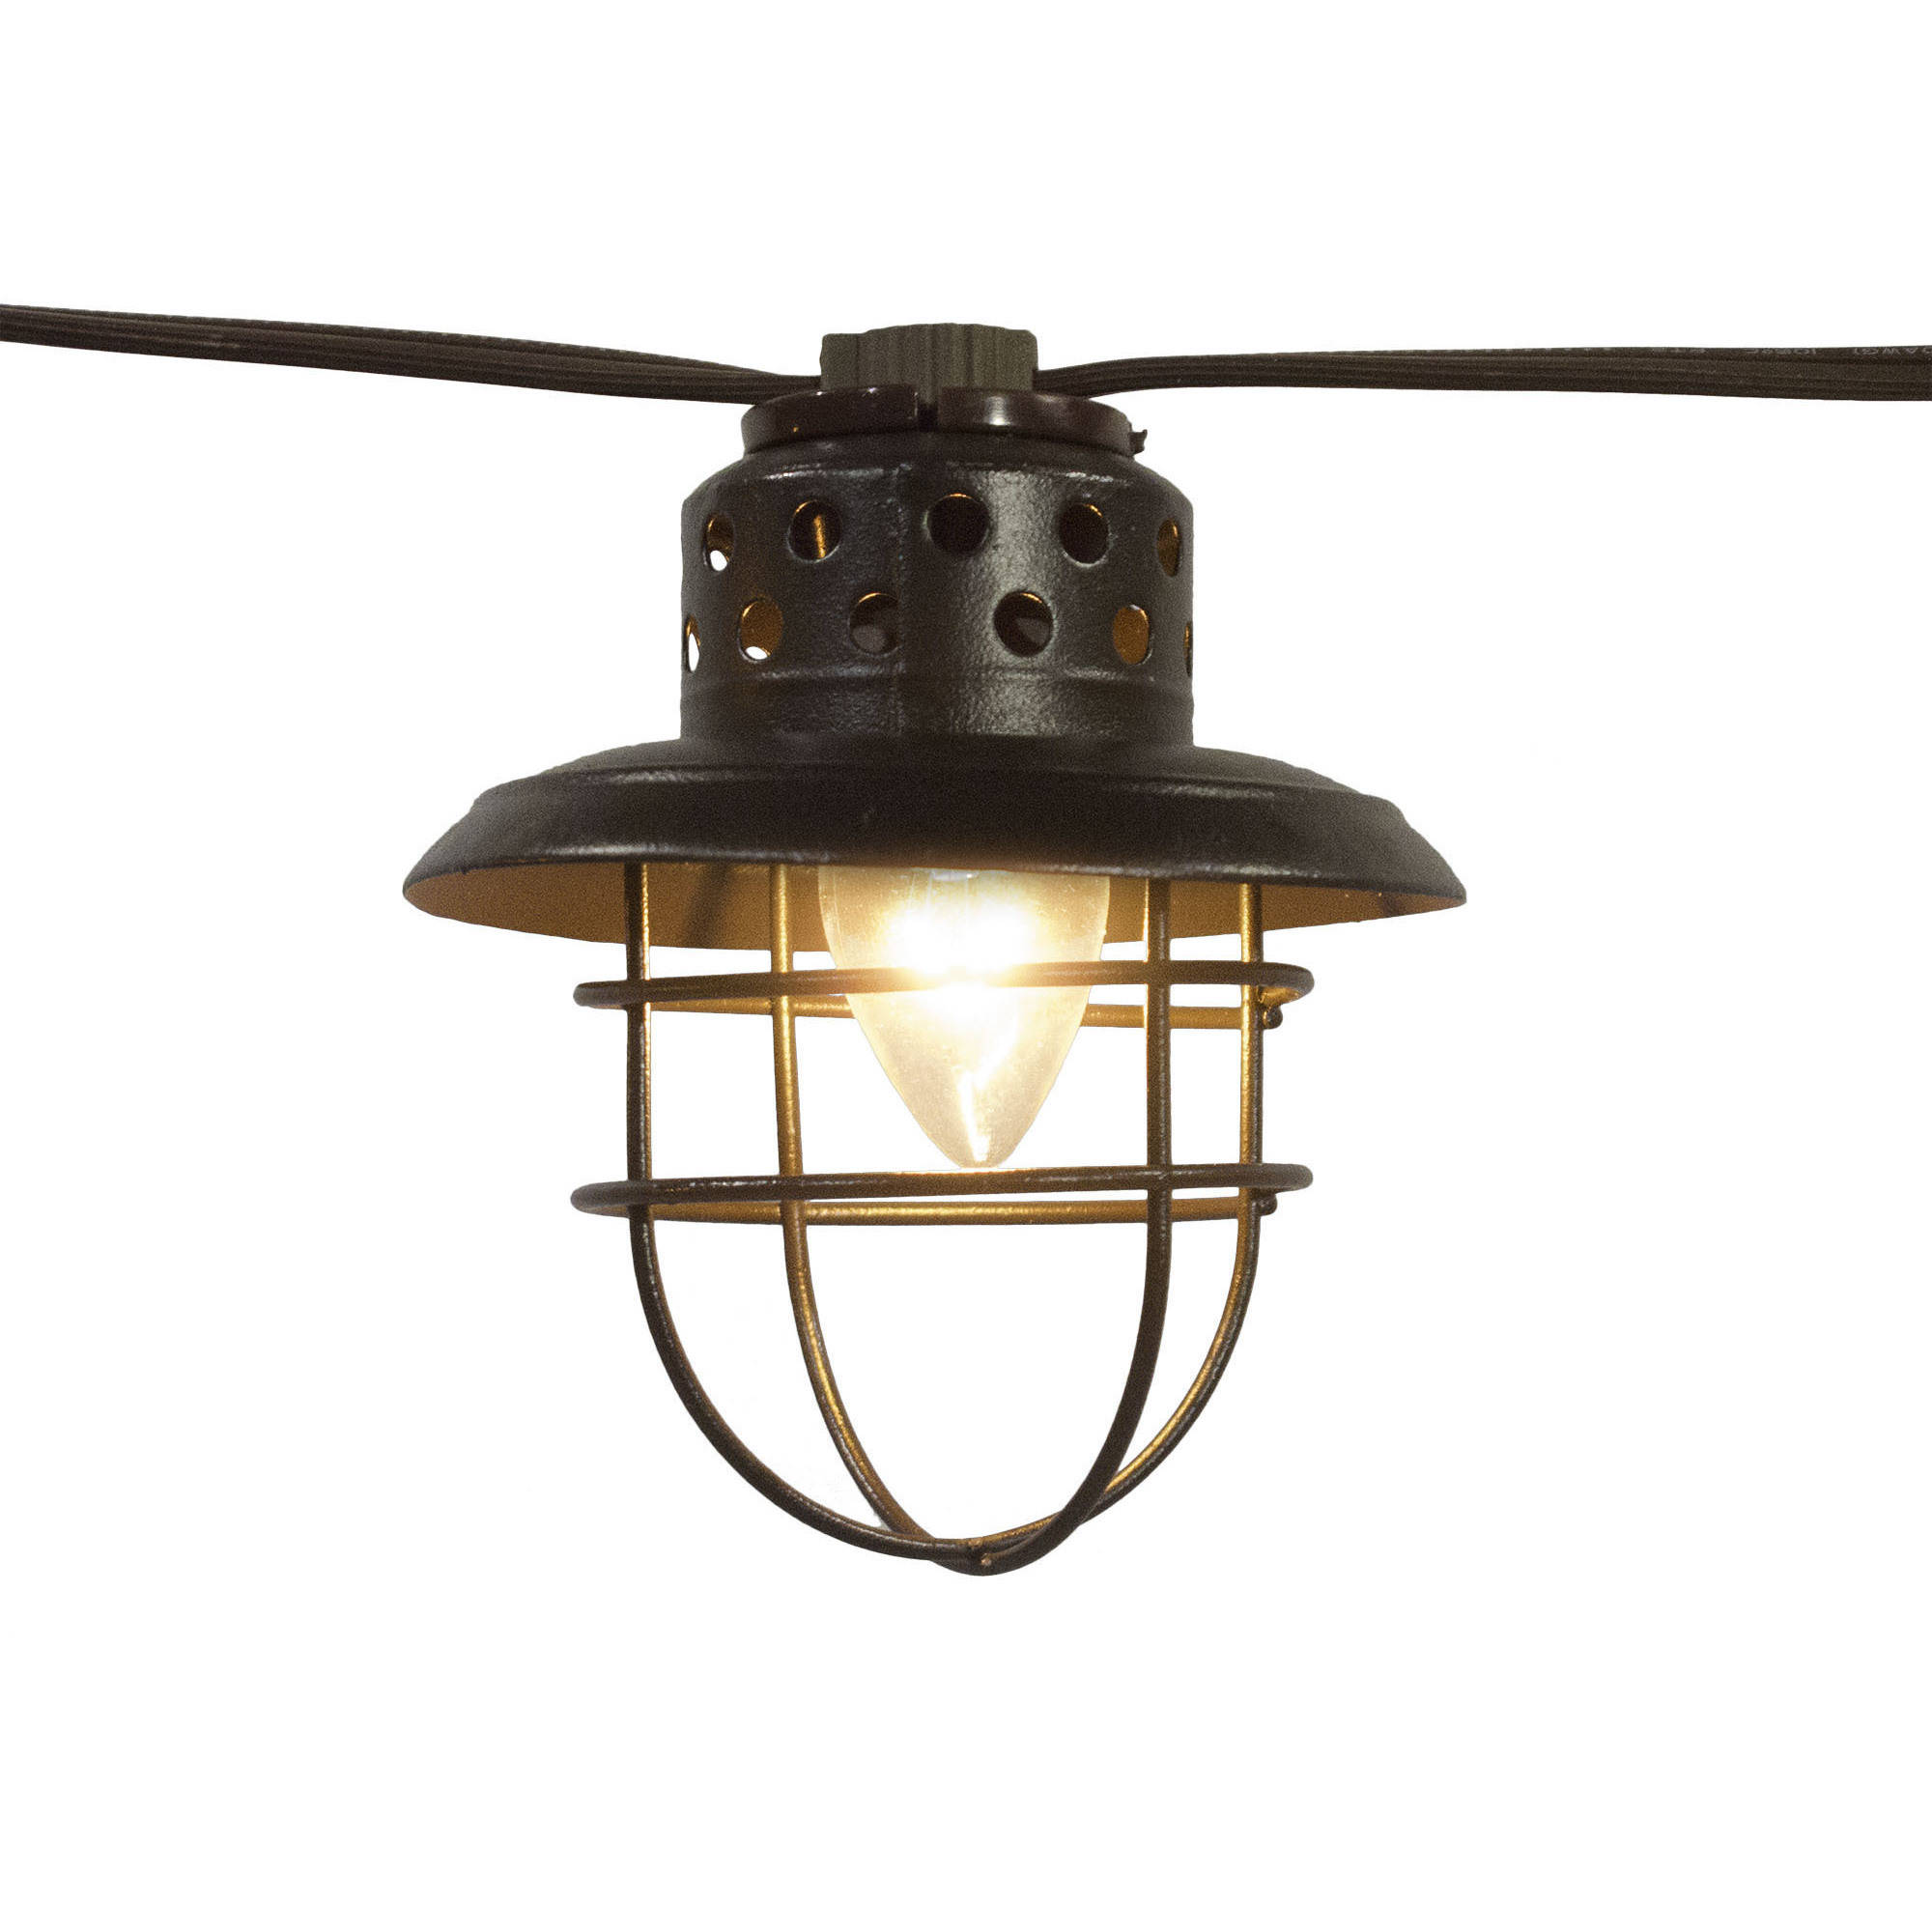 Better Homes and Gardens Outdoor Vintage Cage Lantern String Lights